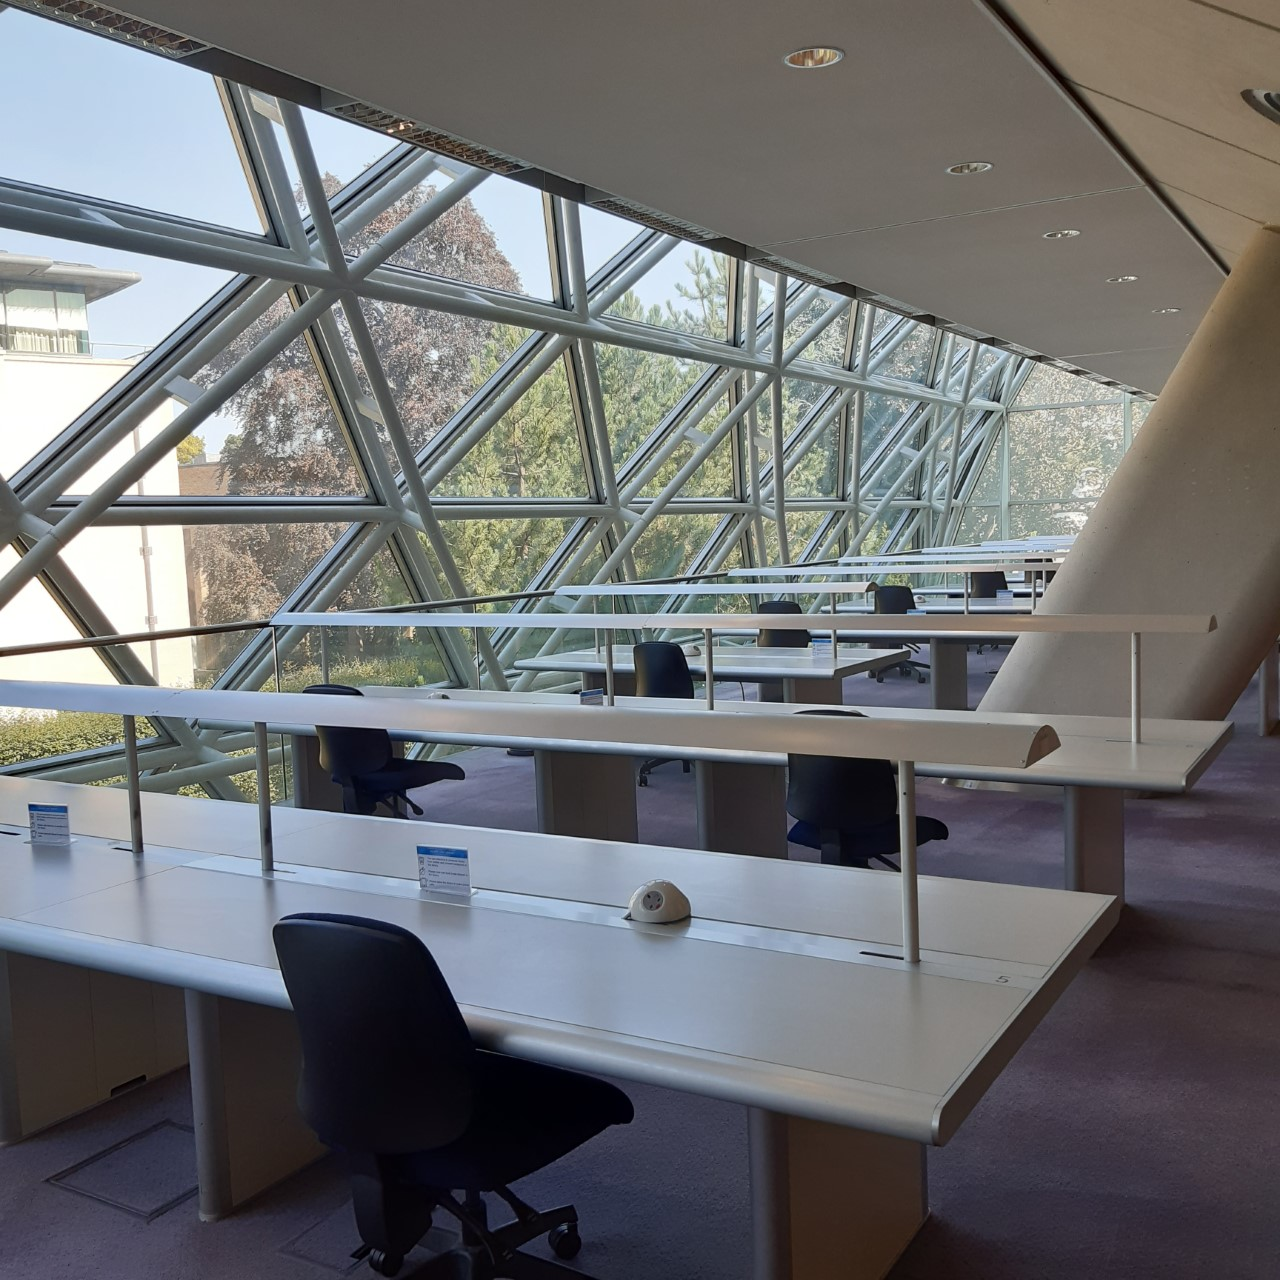 Squire Law Library: Book a Visit